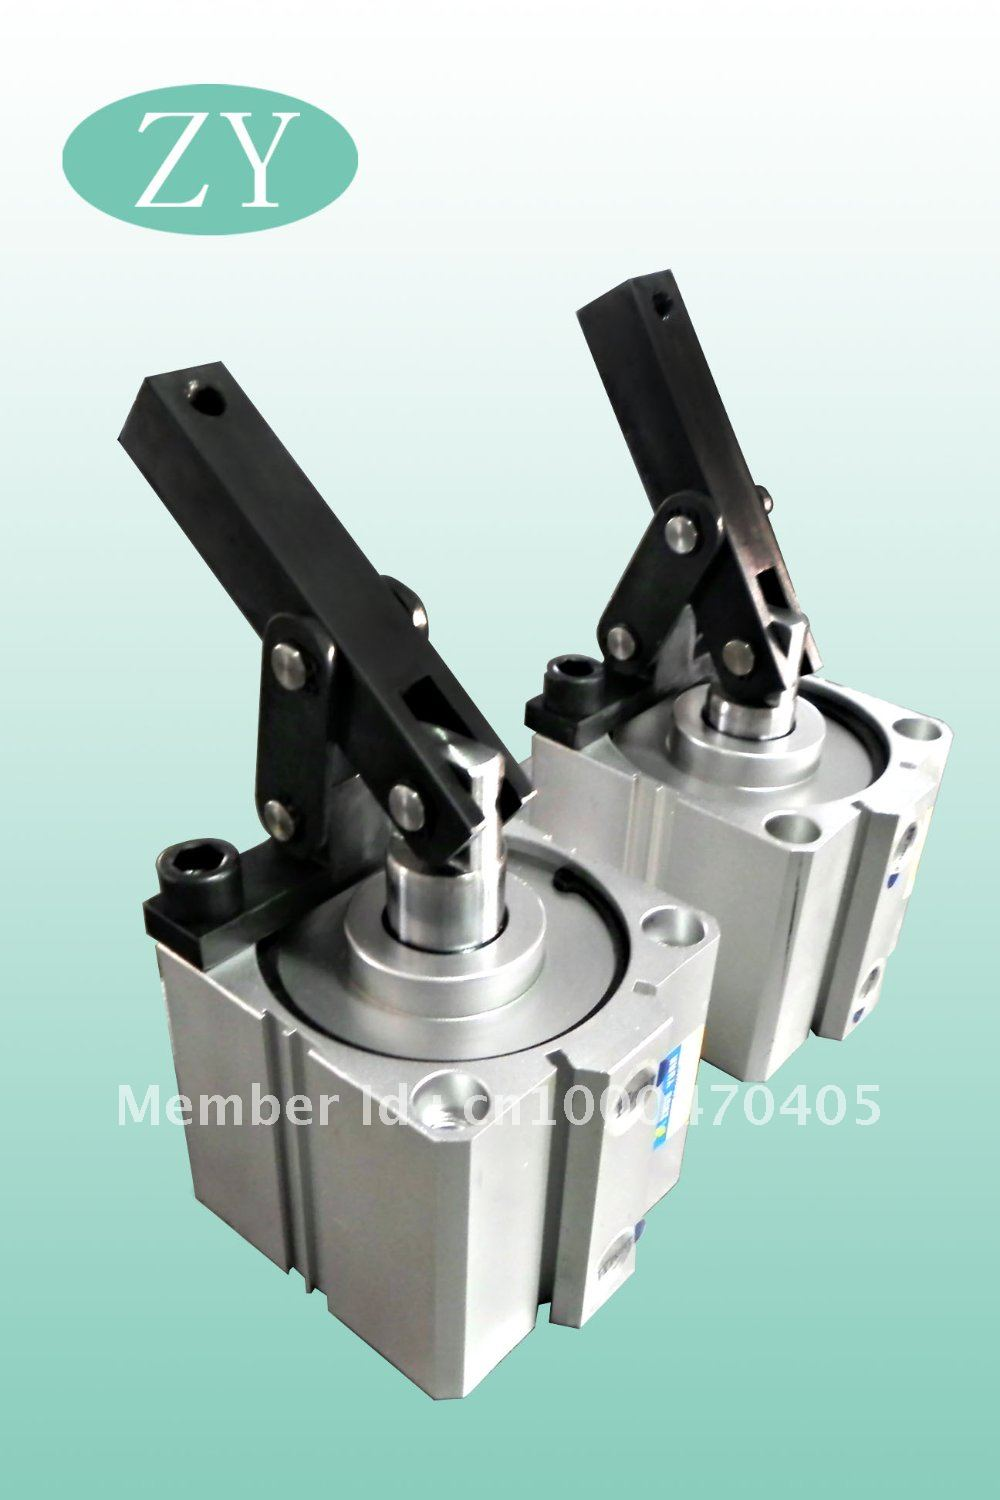 Alc line connected pneumatic lever clamp cylinder